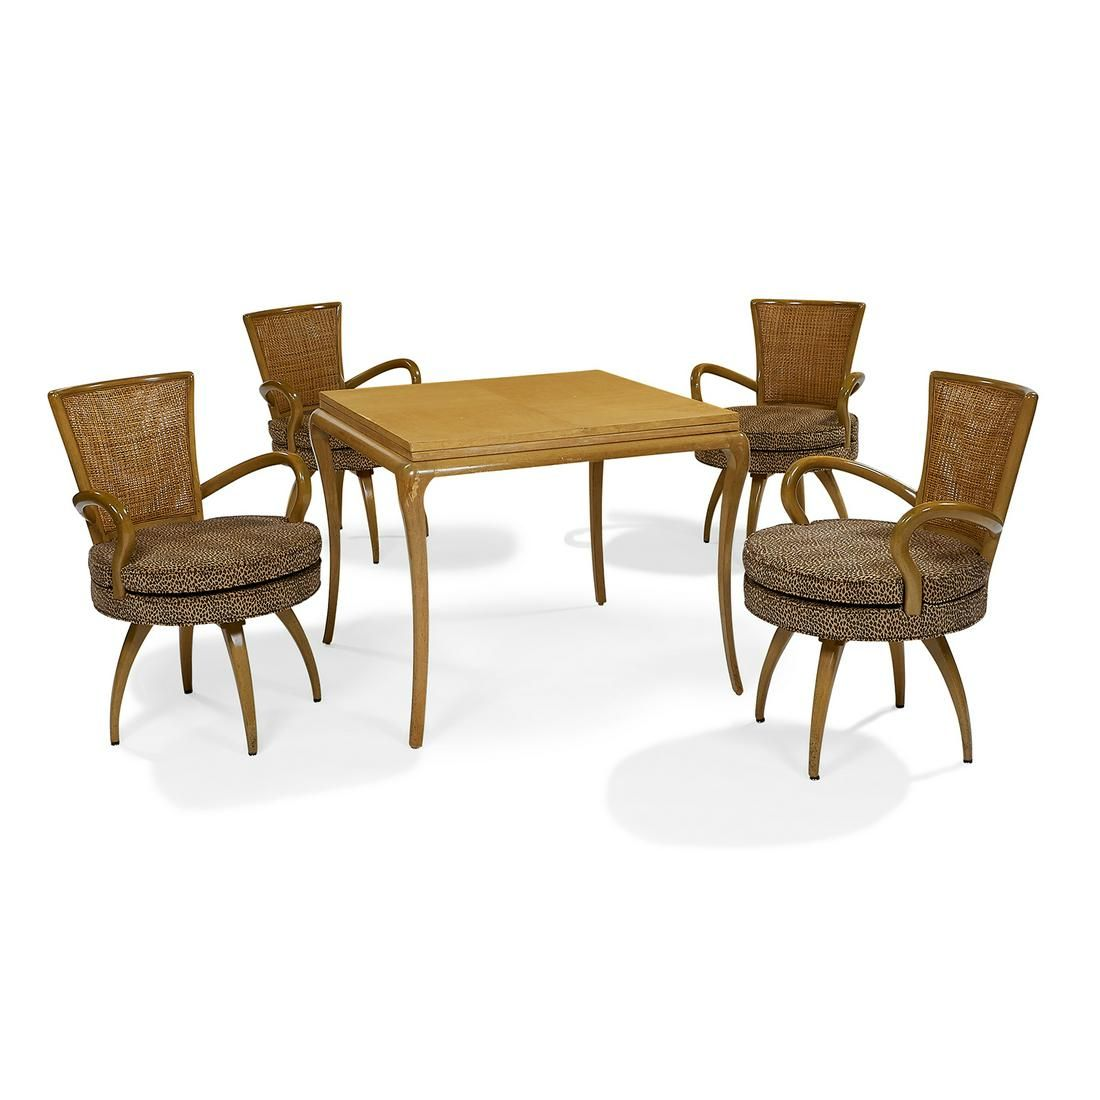 In the Style of Tommi Parzinger table & 4 chairs